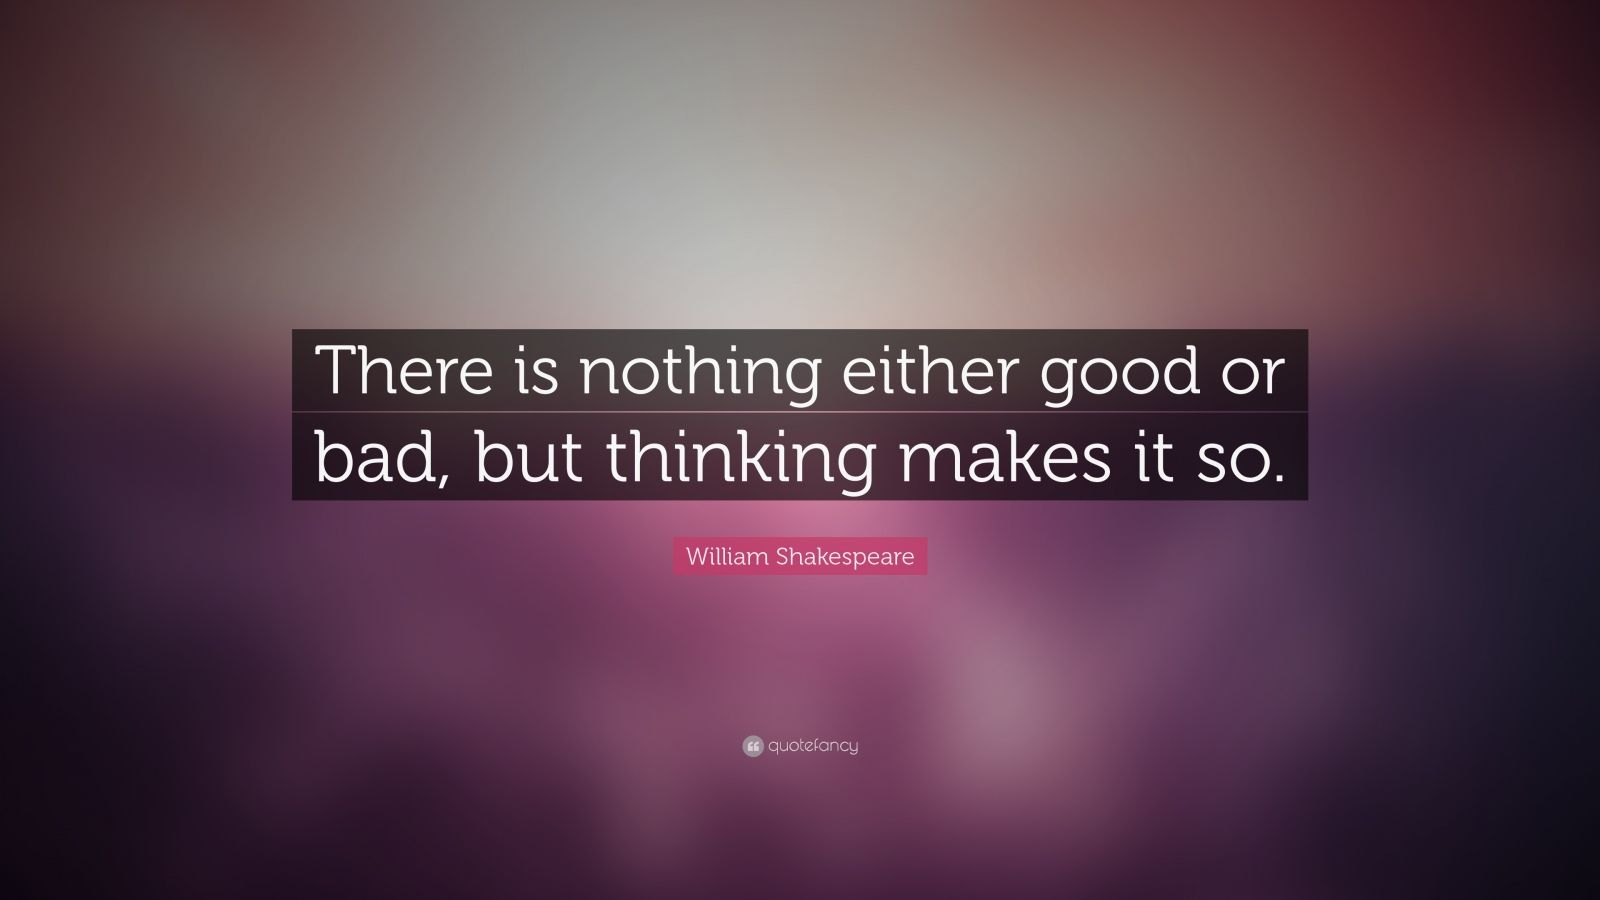 William Shakespeare Quote There Is Nothing Either Good Or Bad But Thinking Makes It So William Shakespeare Quotes William Shakespeare Quotes